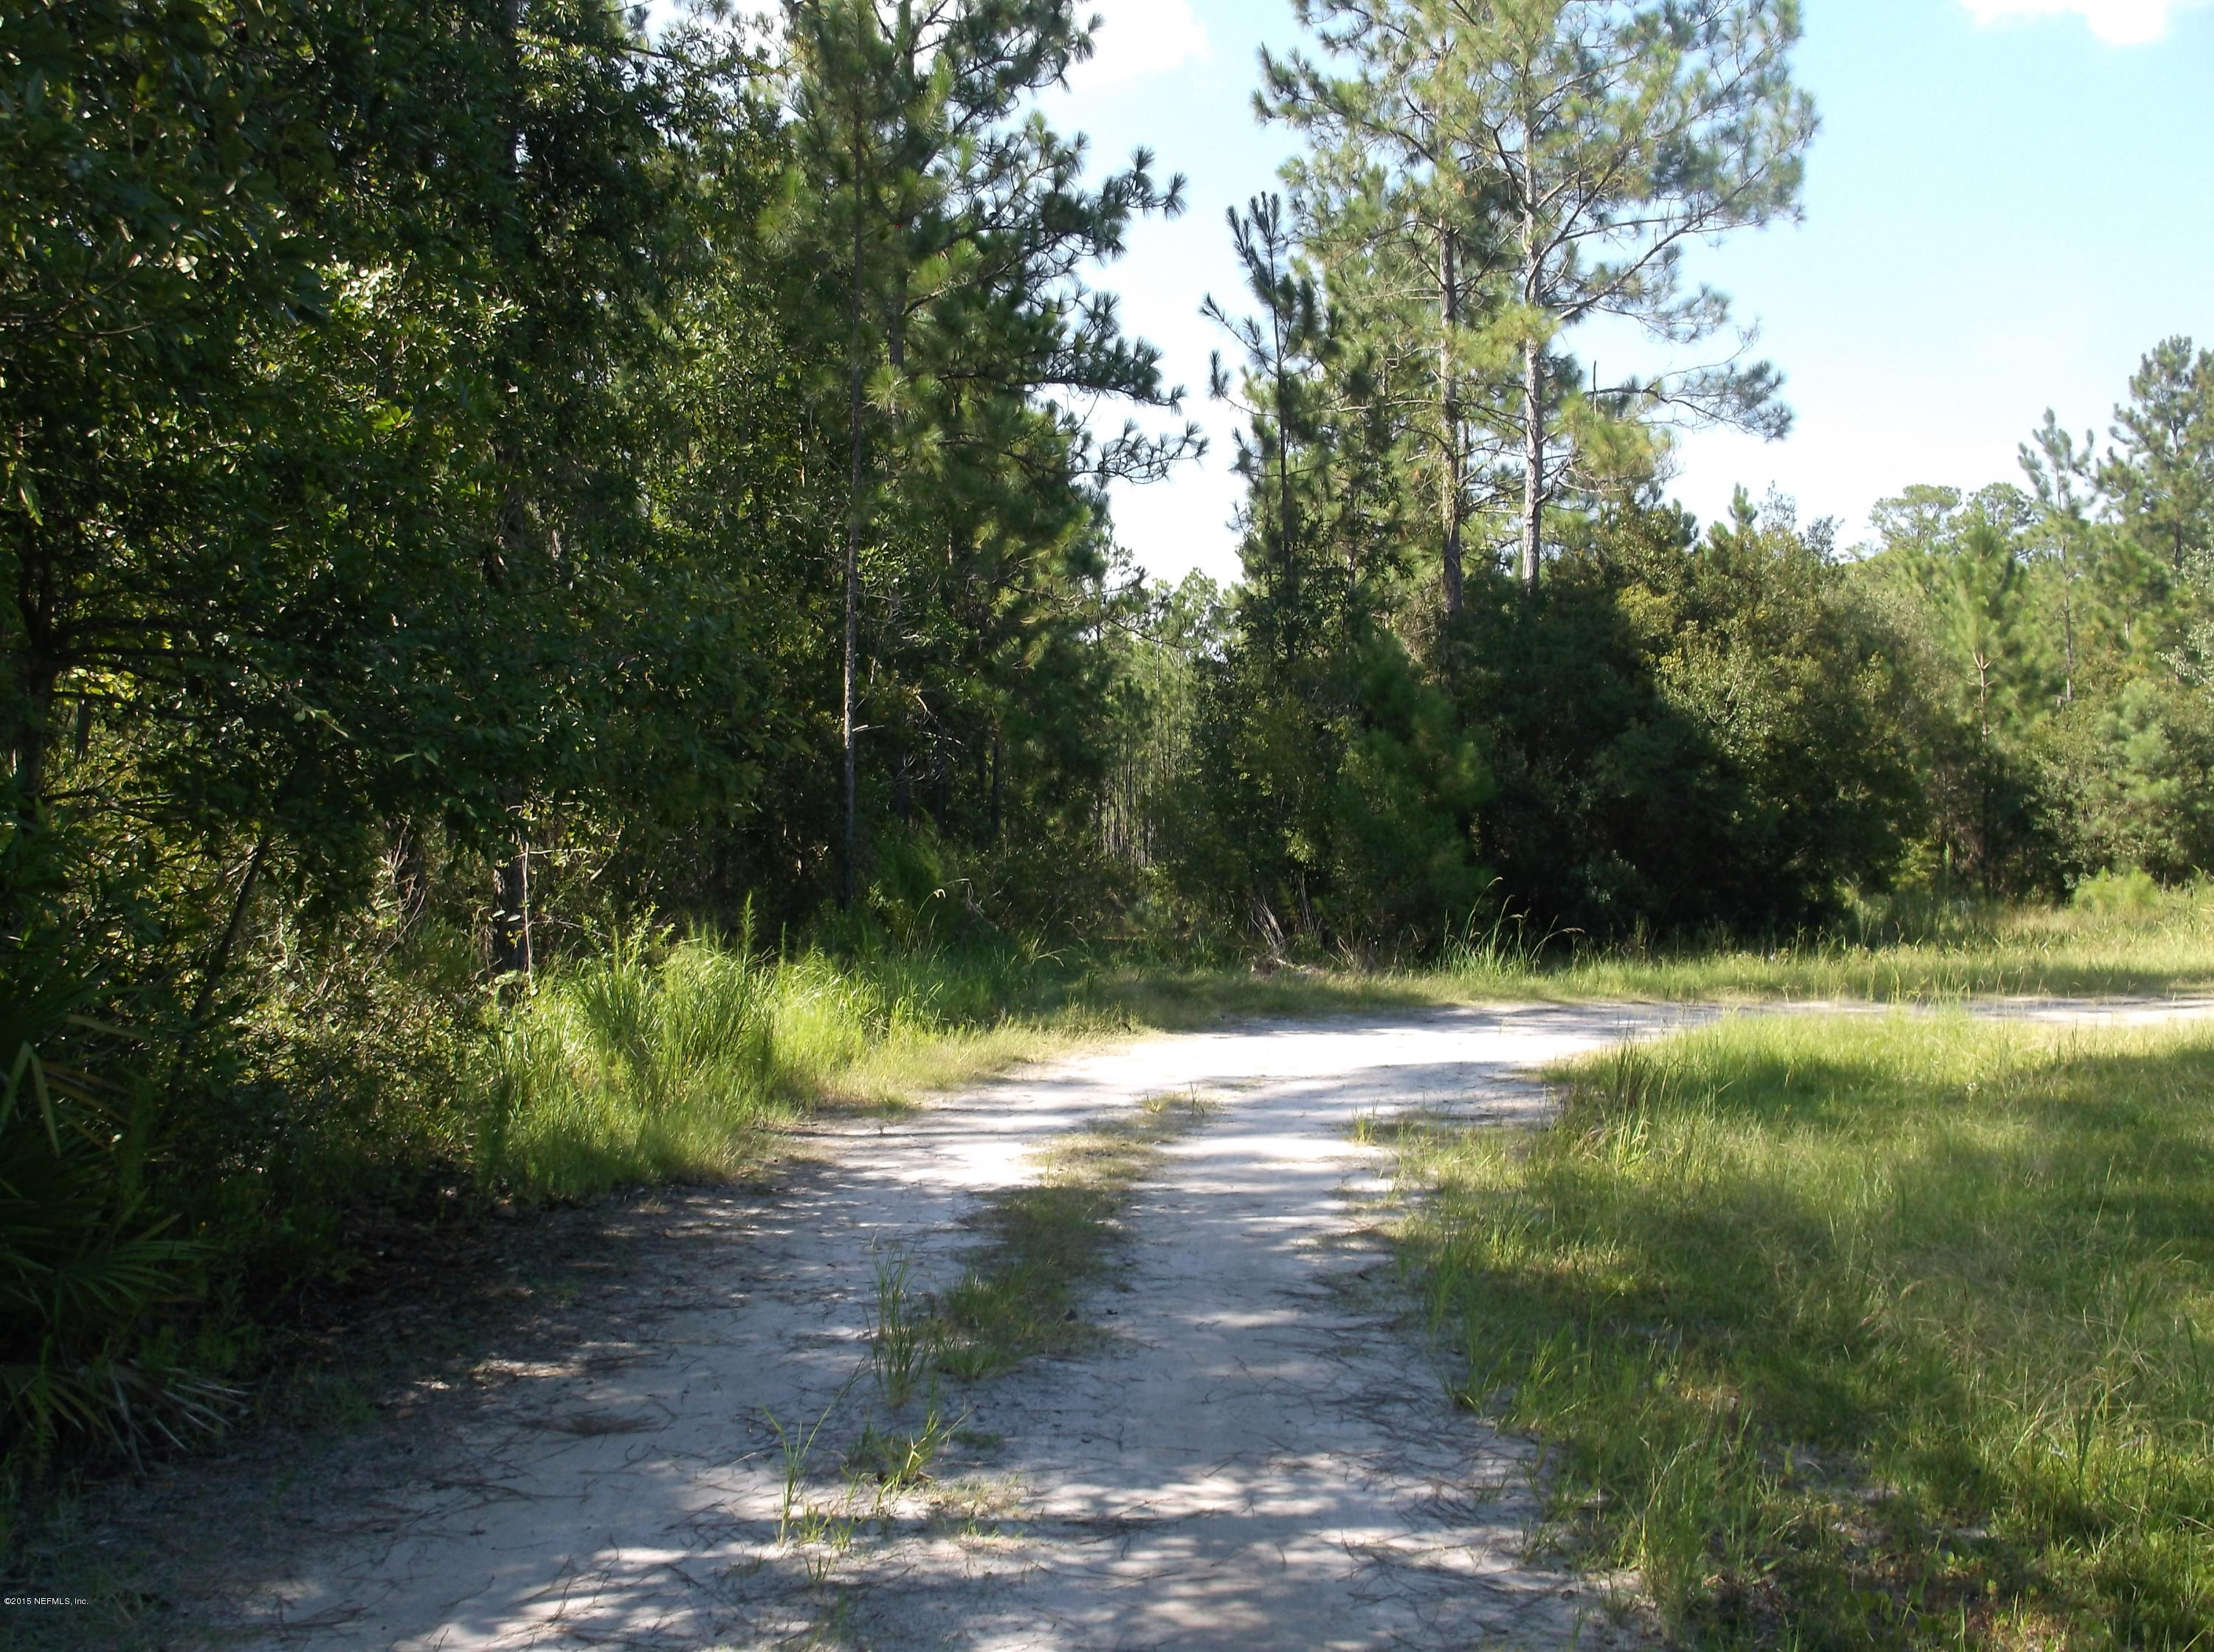 000 LENDA, MIDDLEBURG, FLORIDA 32068, ,Vacant land,For sale,LENDA,786353